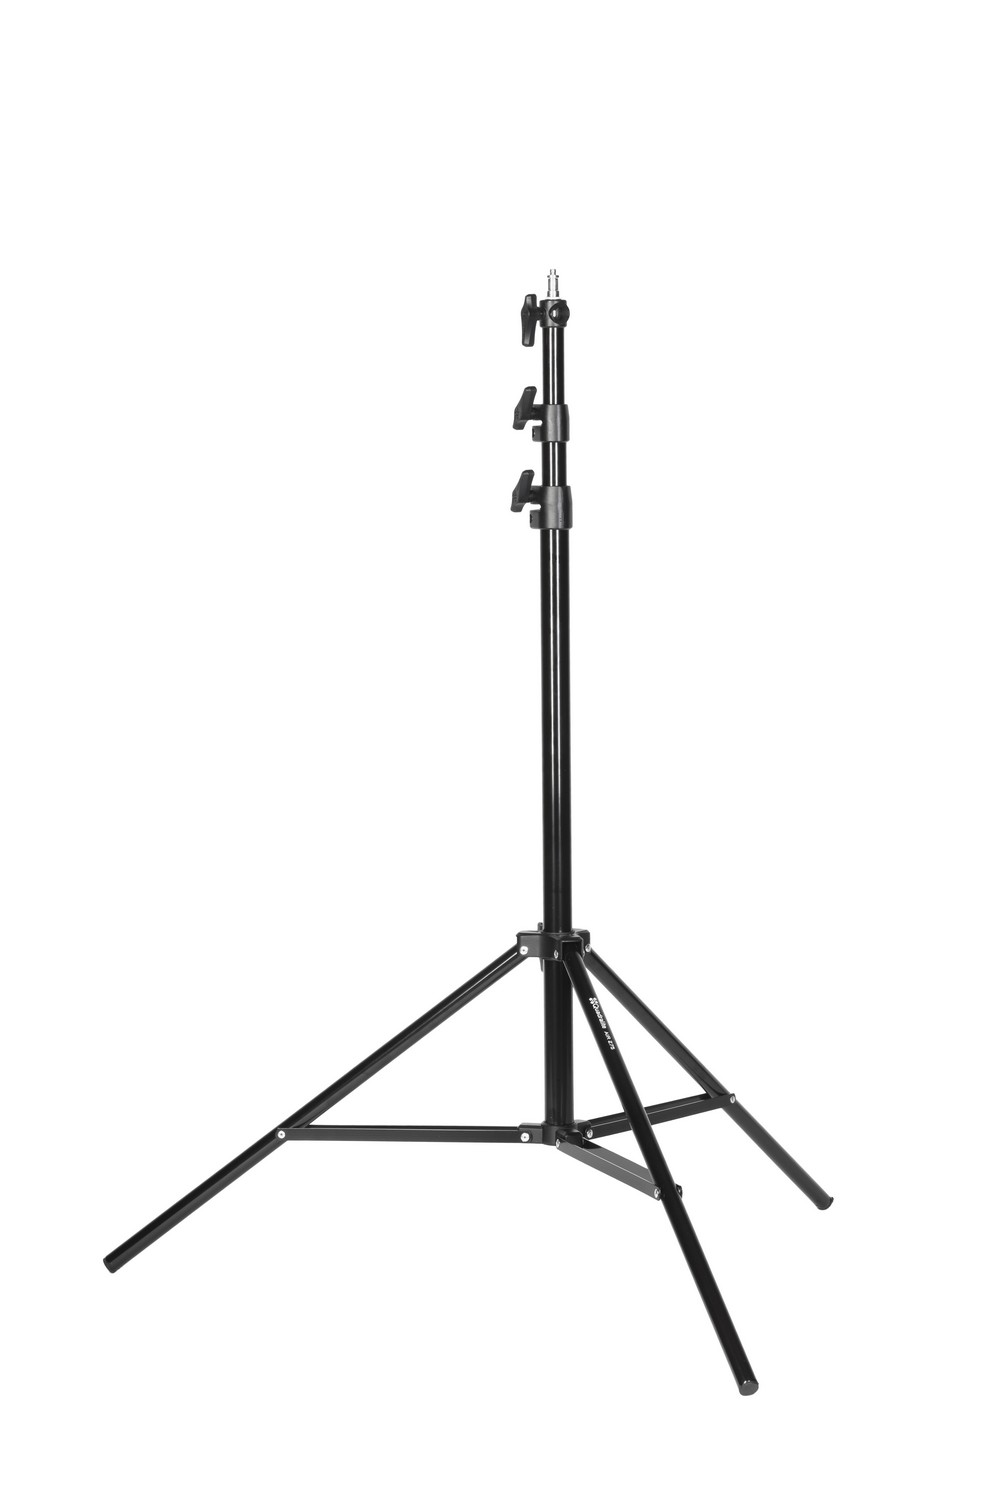 quadrlaite air275 studio stand